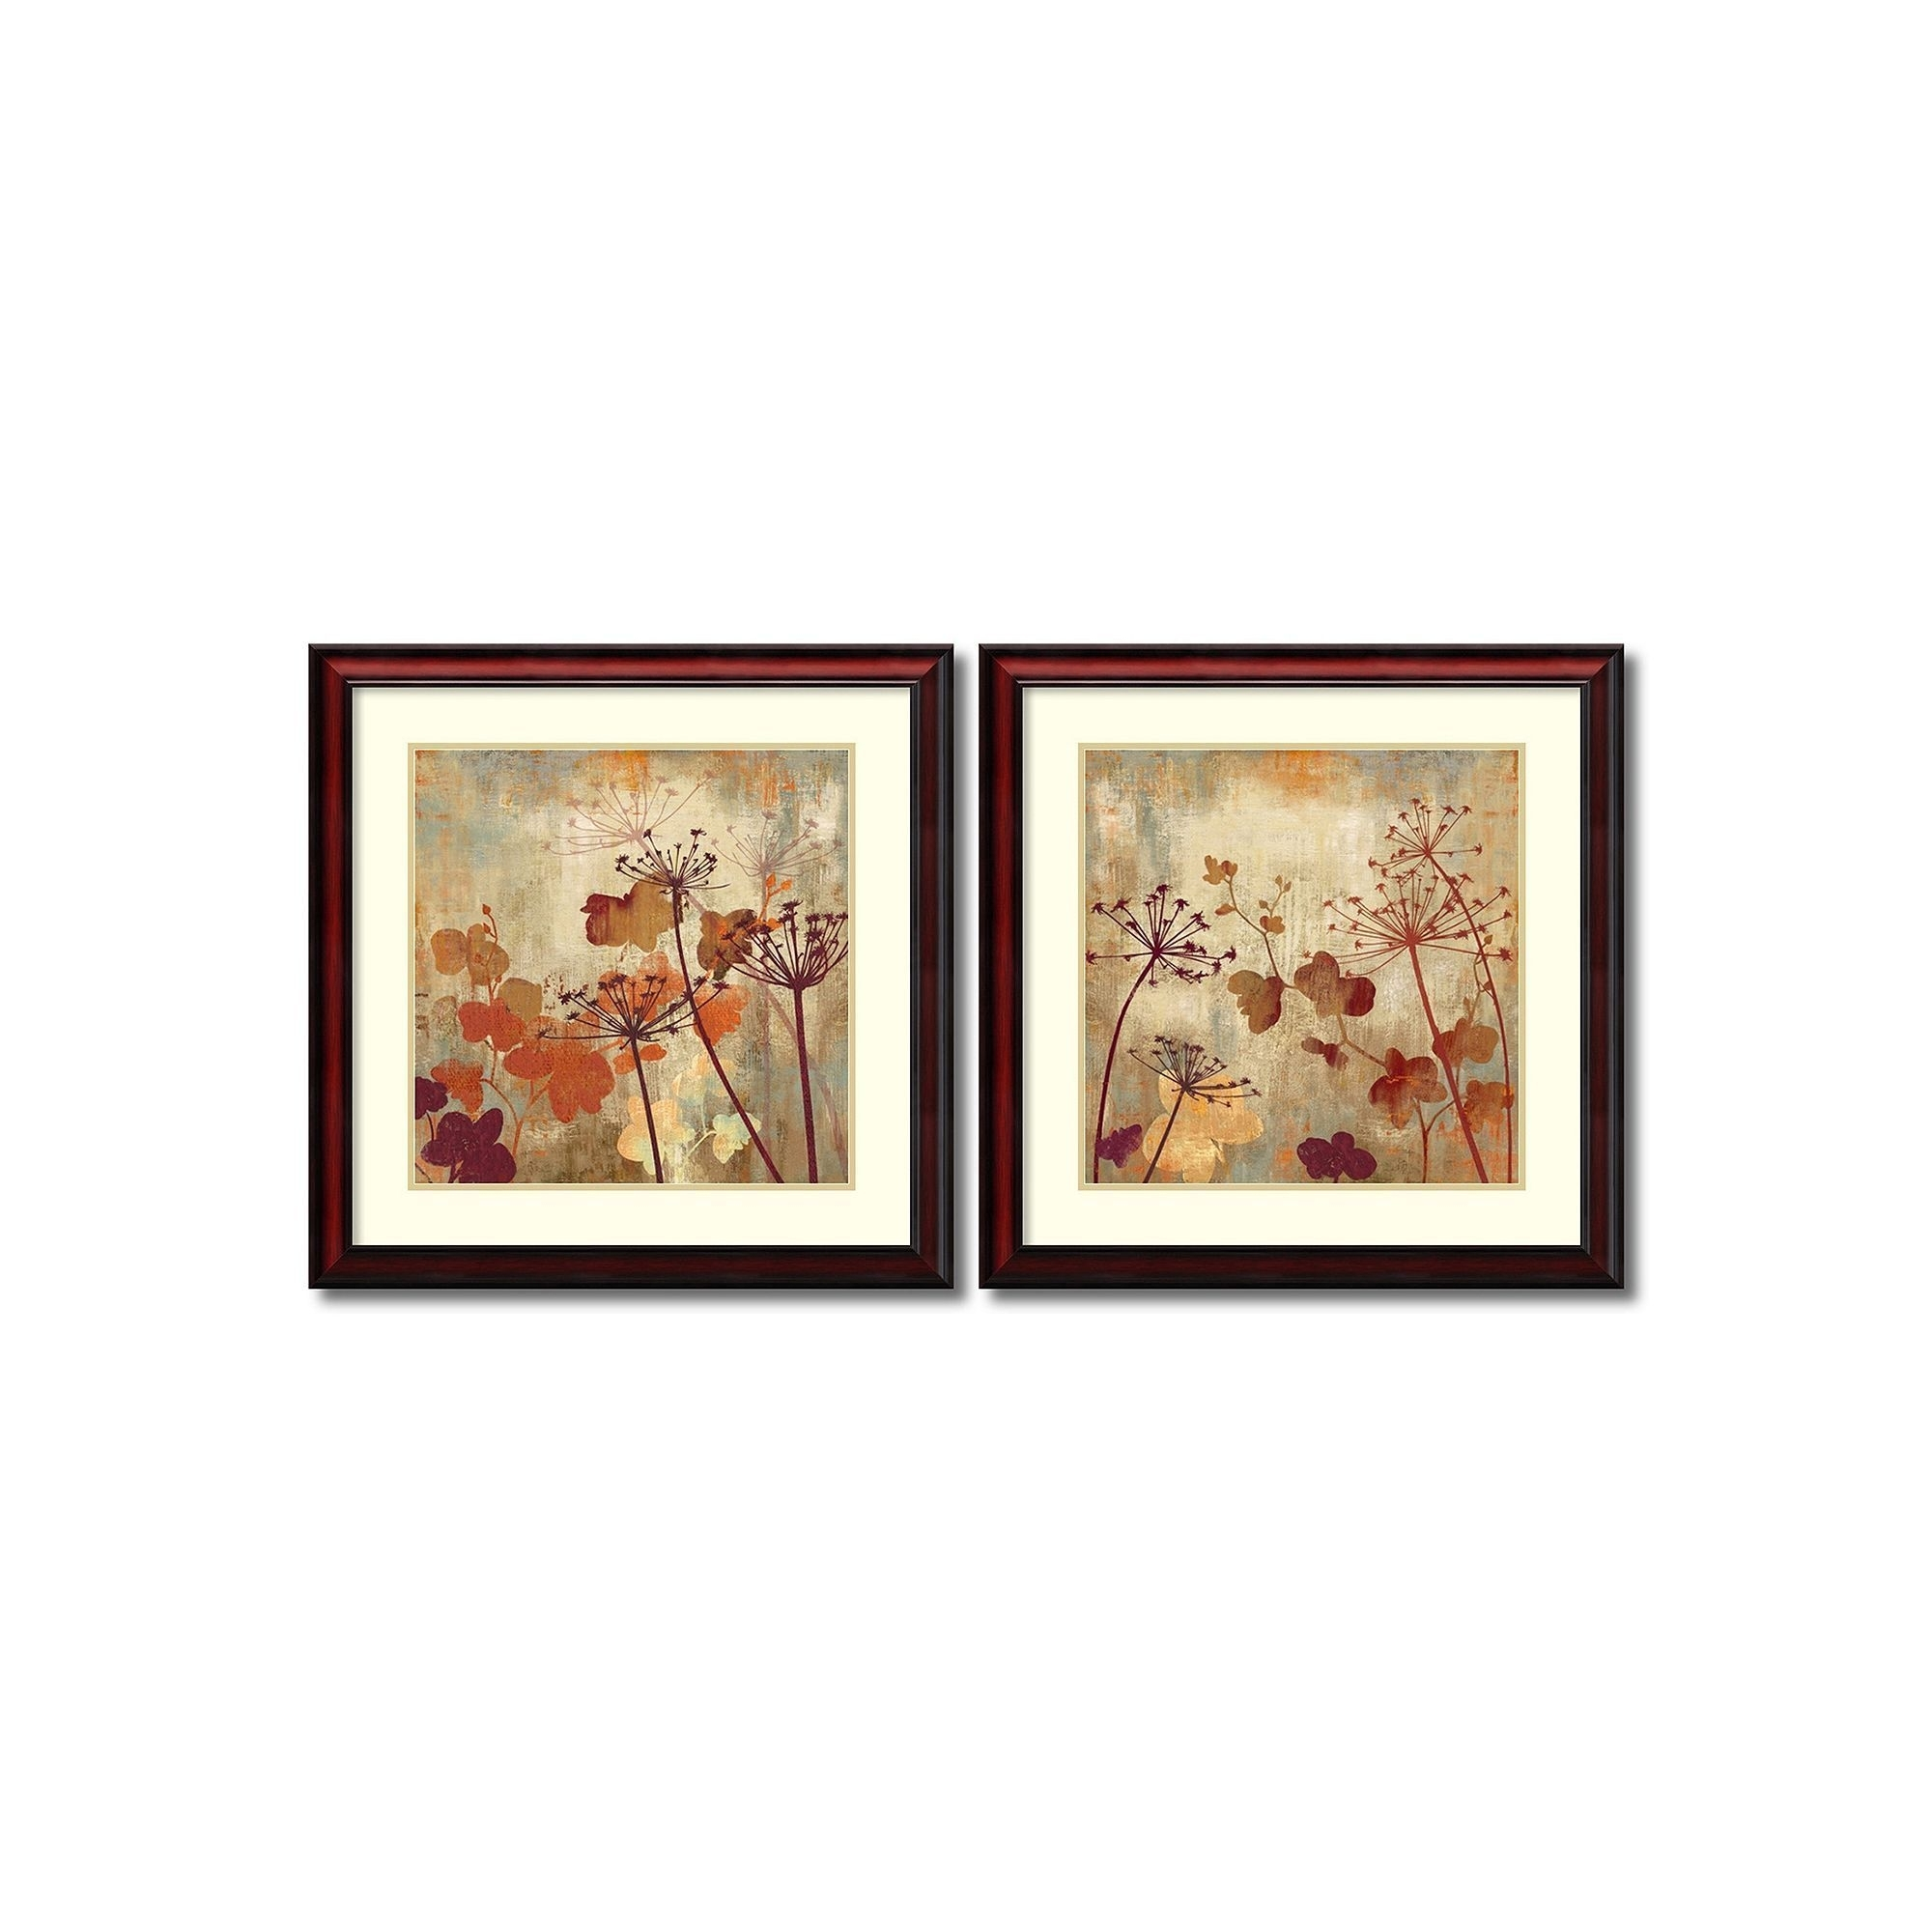 Fascinating Framed Wall Art Sets 5 Smart Design Canvas Home Within Newest Wall Art Sets (Gallery 14 of 15)